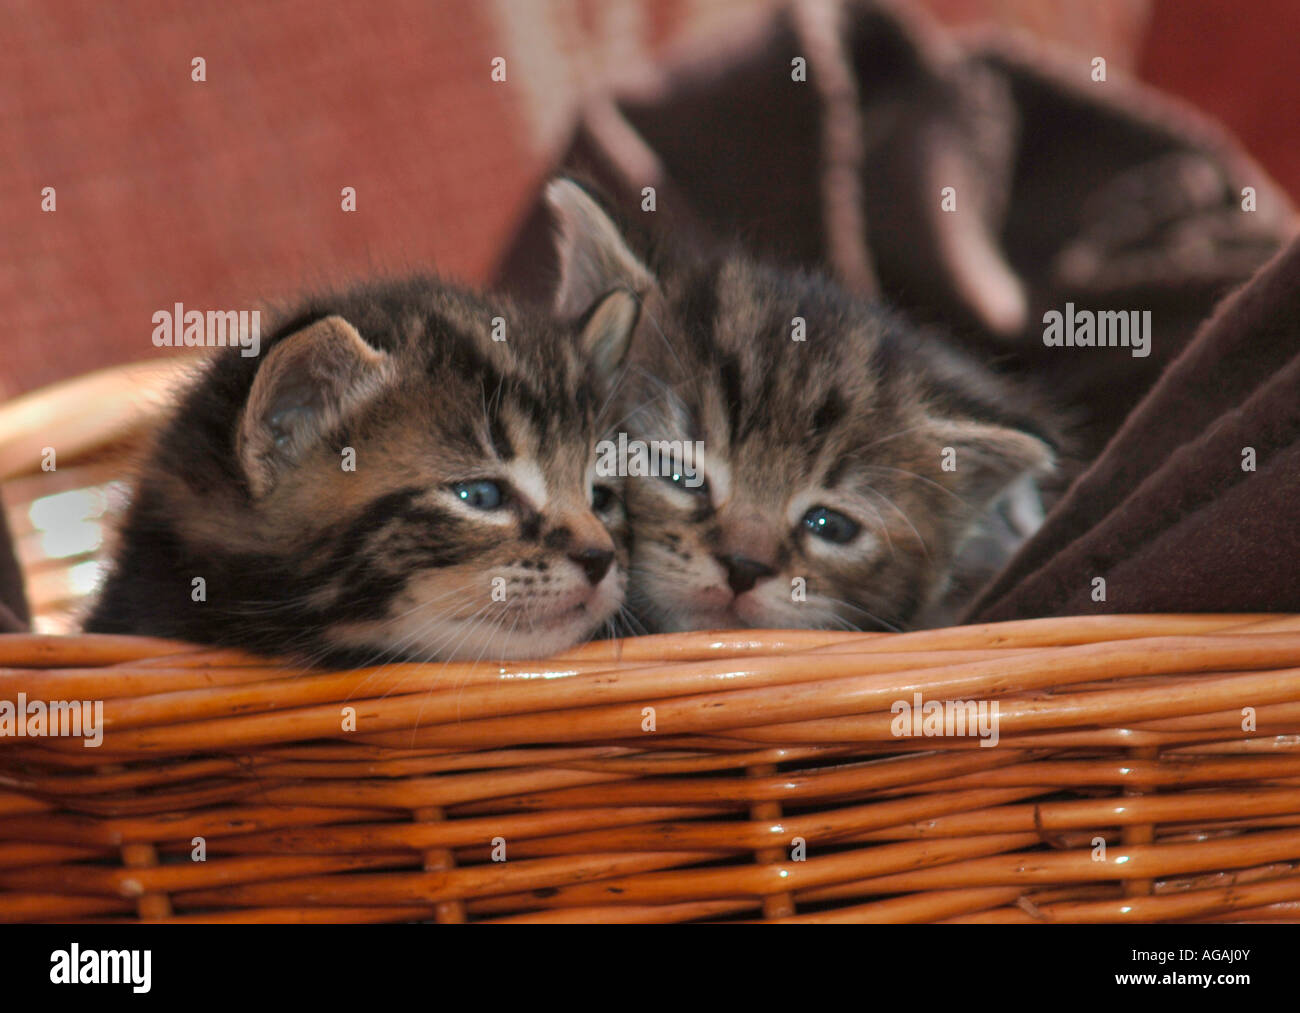 Kittens In A Basket - Stock Image